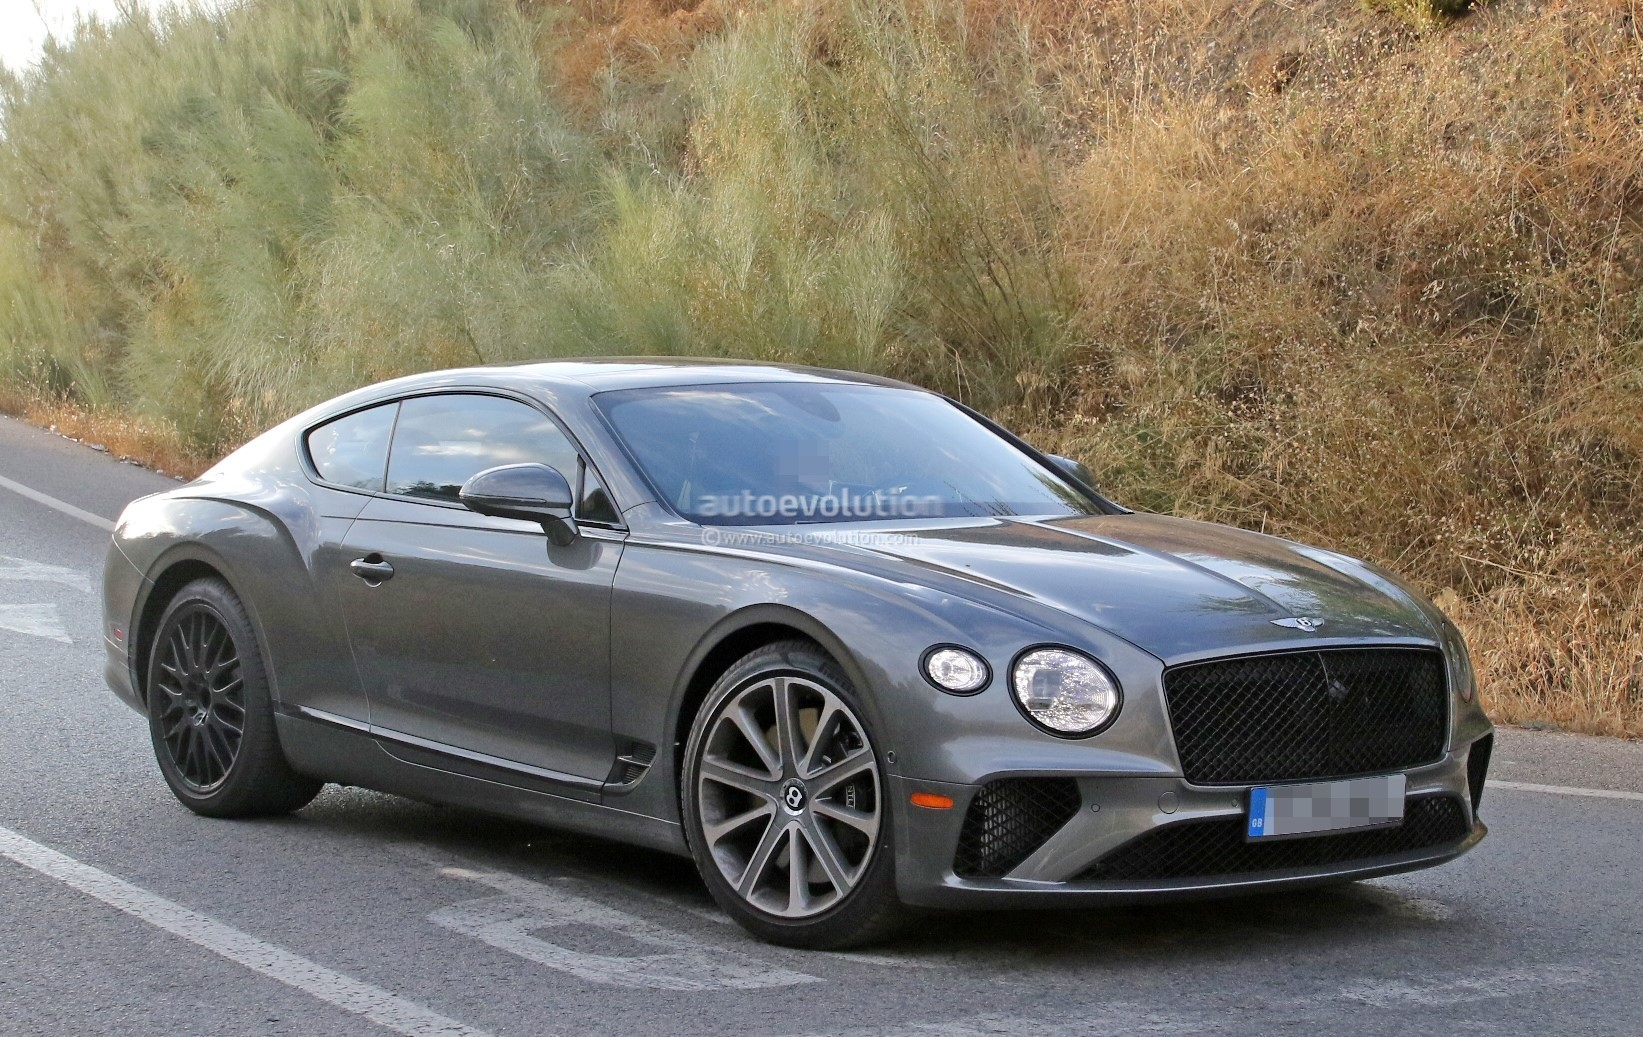 2019 Bentley Continental Gt Speed Spied With Black Grille